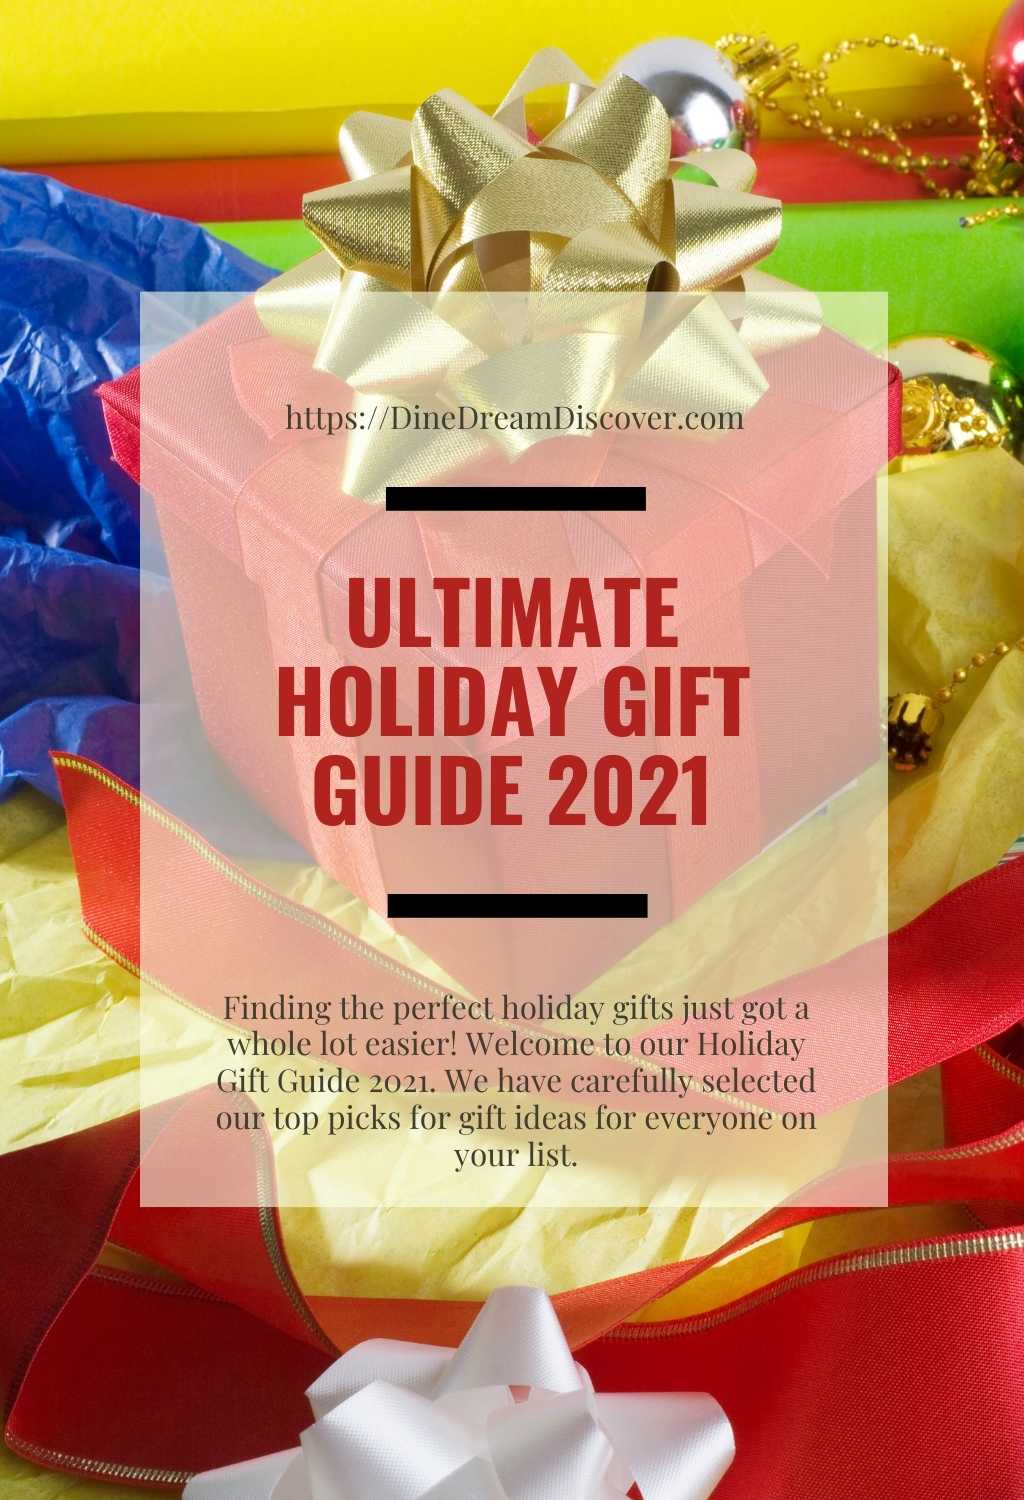 ultimate holiday gift guide 2021